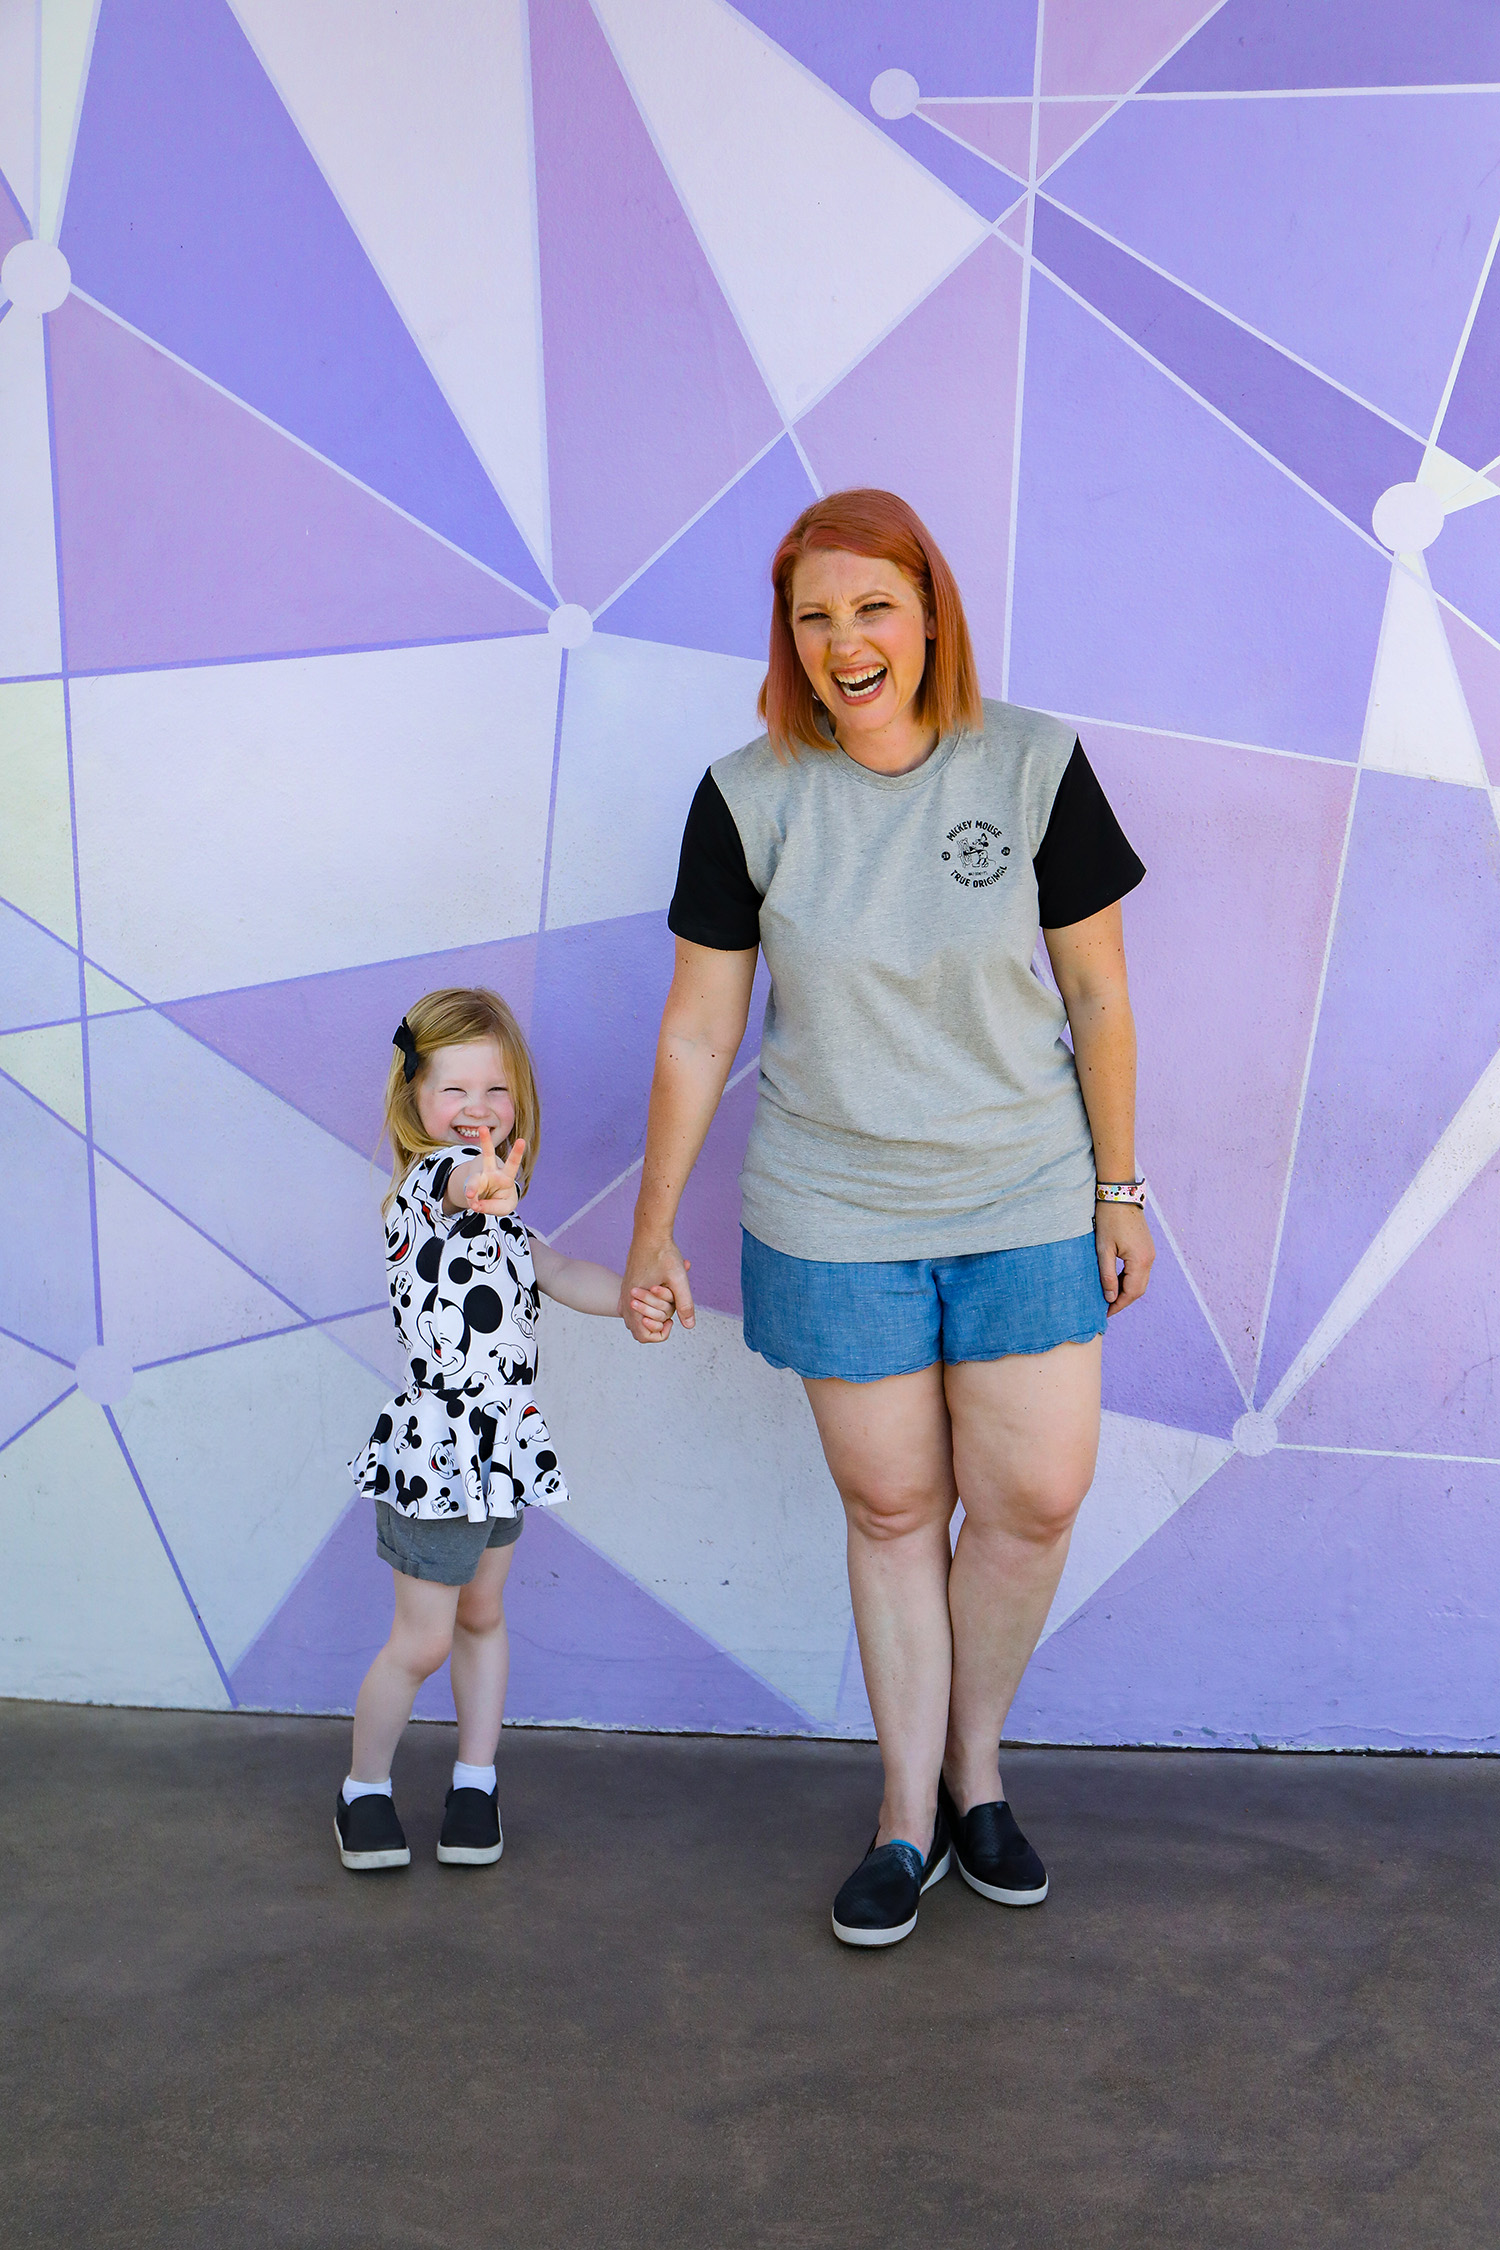 Gotta love that purple wall! Magic Kingdom is perfect for taking cute photos, and these Disney World Outfits? Mommy and me perfection!